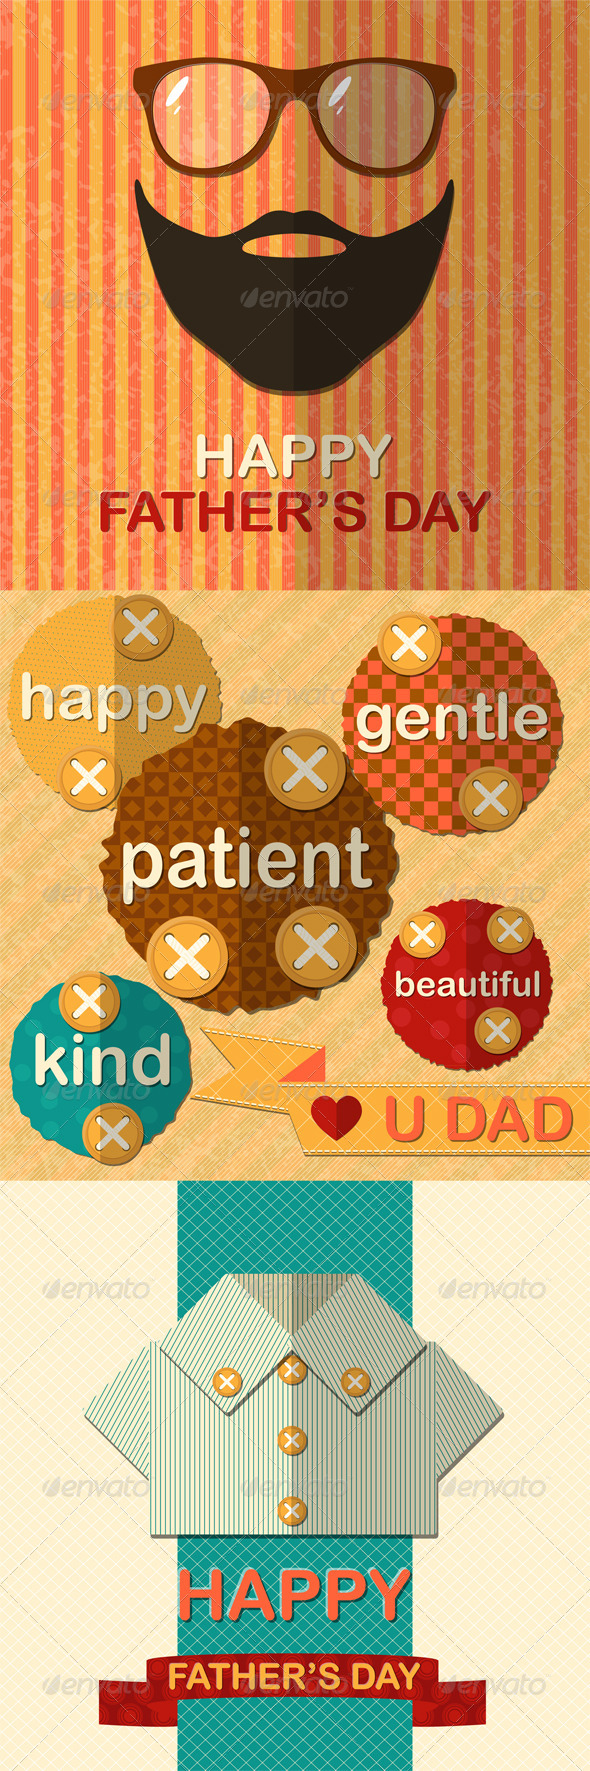 Three Father's Day Greetings Cards